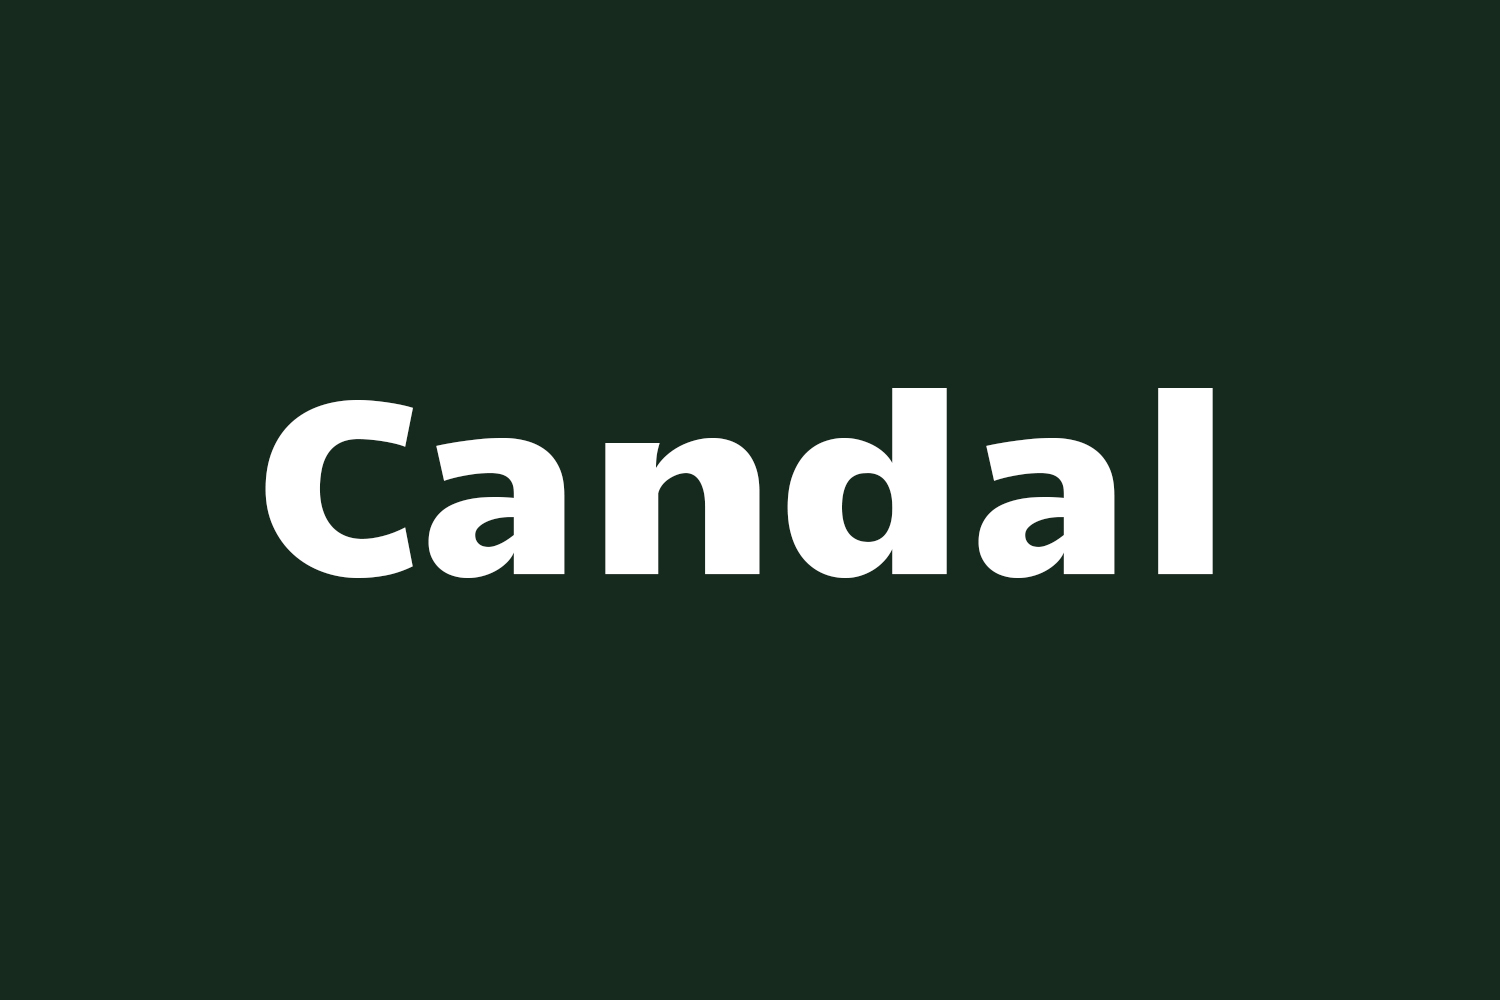 Candal